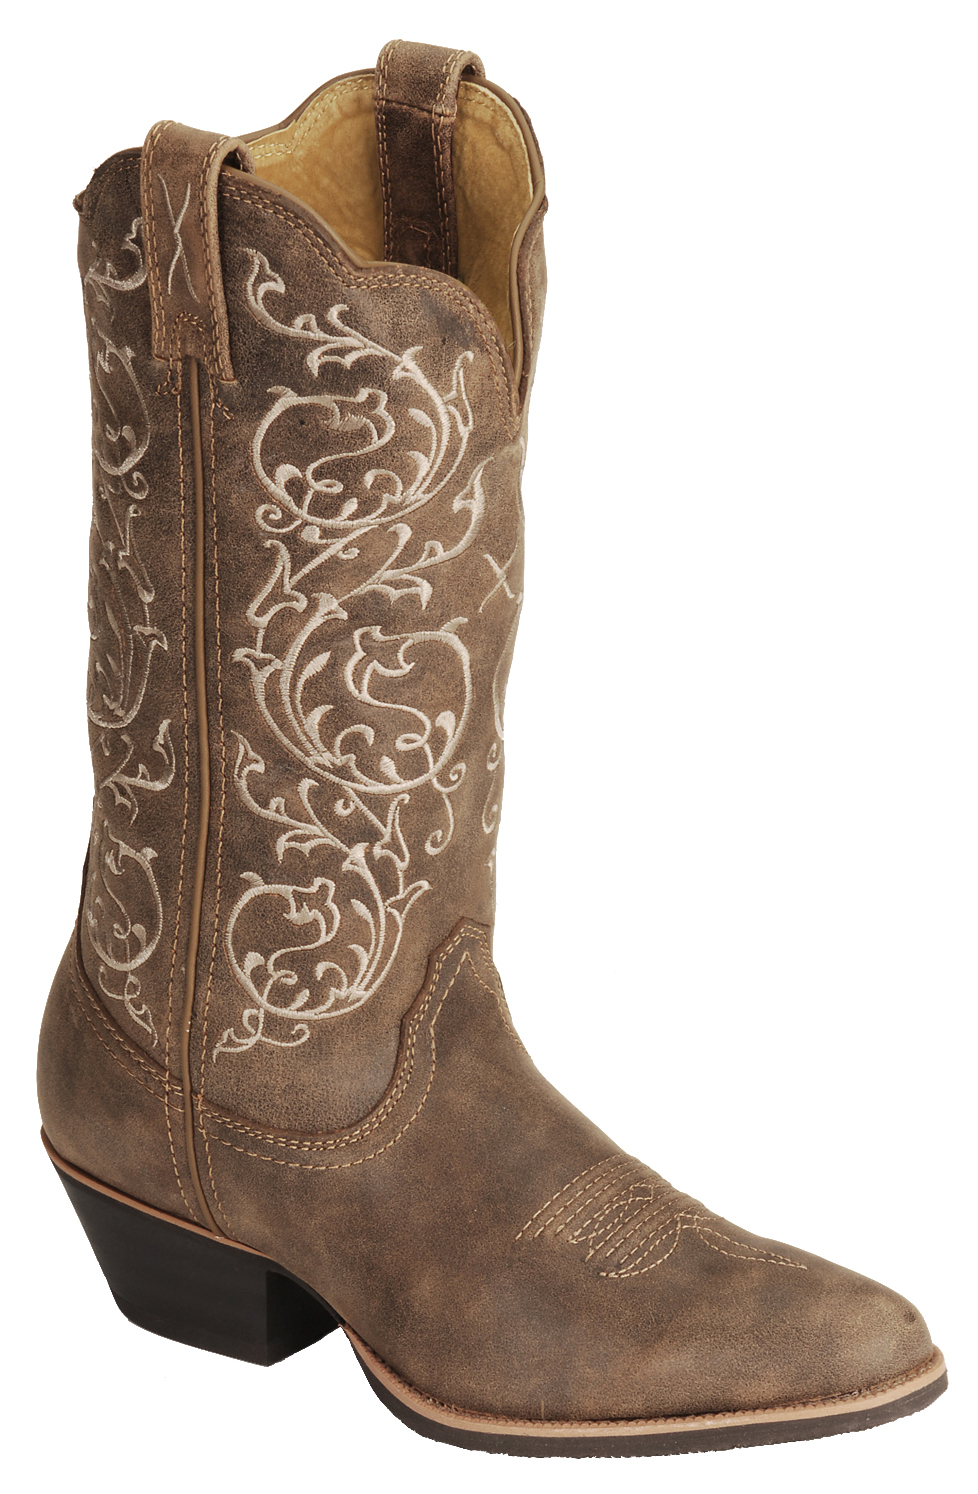 Model Twisted X Boots Embroidered Leather Cowboy Boots (For Women) - Save 42%